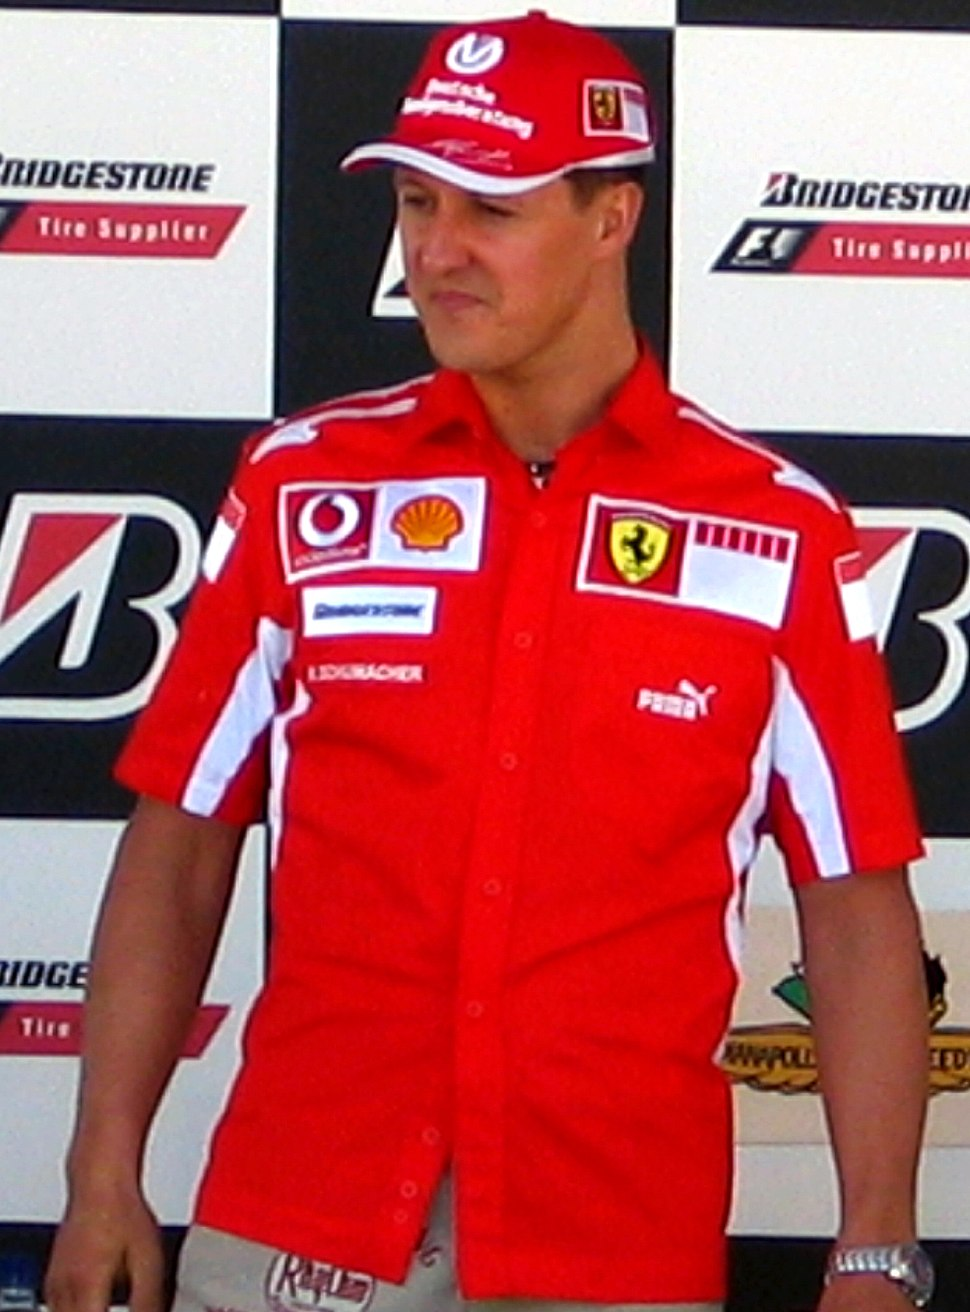 Michael Schumacher-I'm the man (cropped)